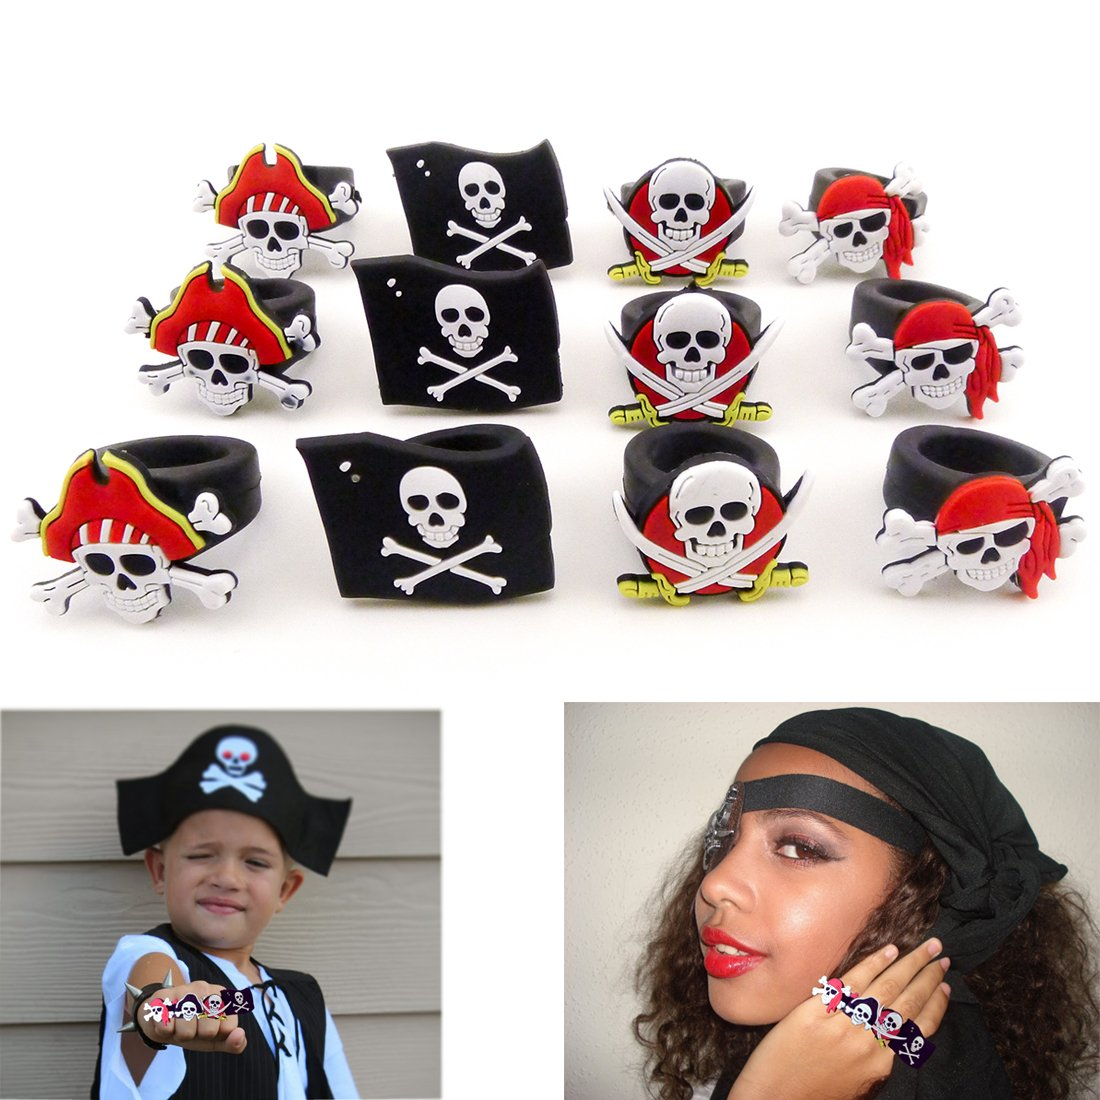 Rubber Pirate Rings 1 Dozen Halloween Costume Easter Egg Fillers - NEW